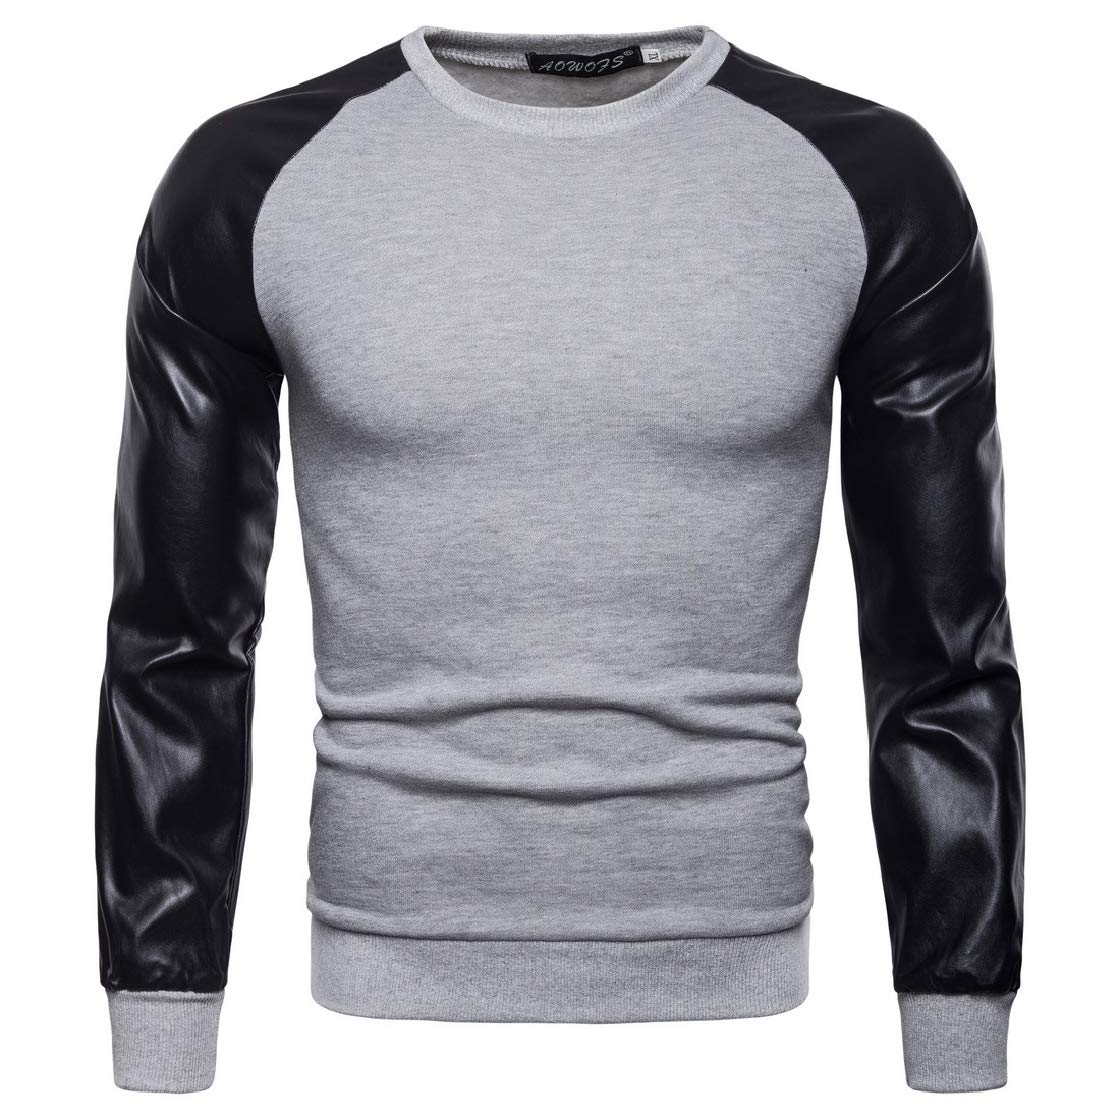 YUNY Mens Faux-Leather Pullover Plus Velvet Simple Splicing Sweatshirt Top Light Grey L